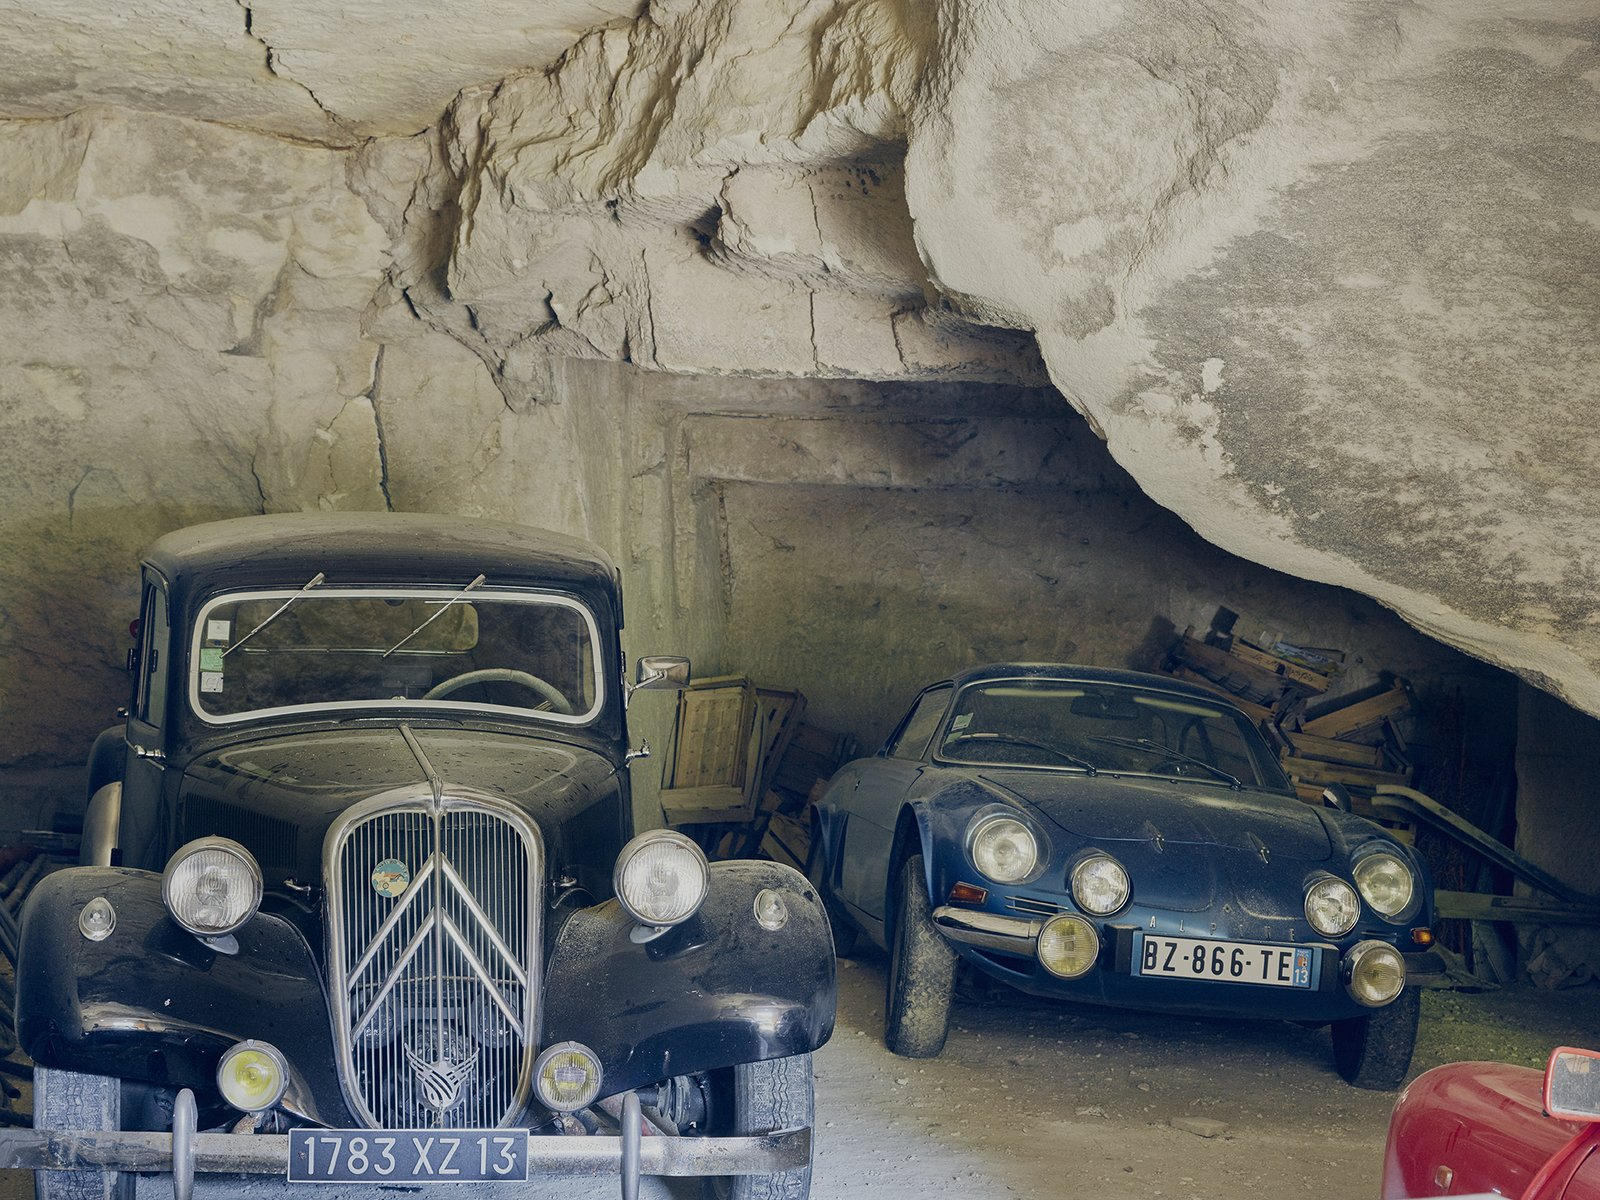 Garage The fleet includes a ruby-red Renault Dauphine and a black Citroën Traction Avant.  Photo 14 of 19 in Mine Dining